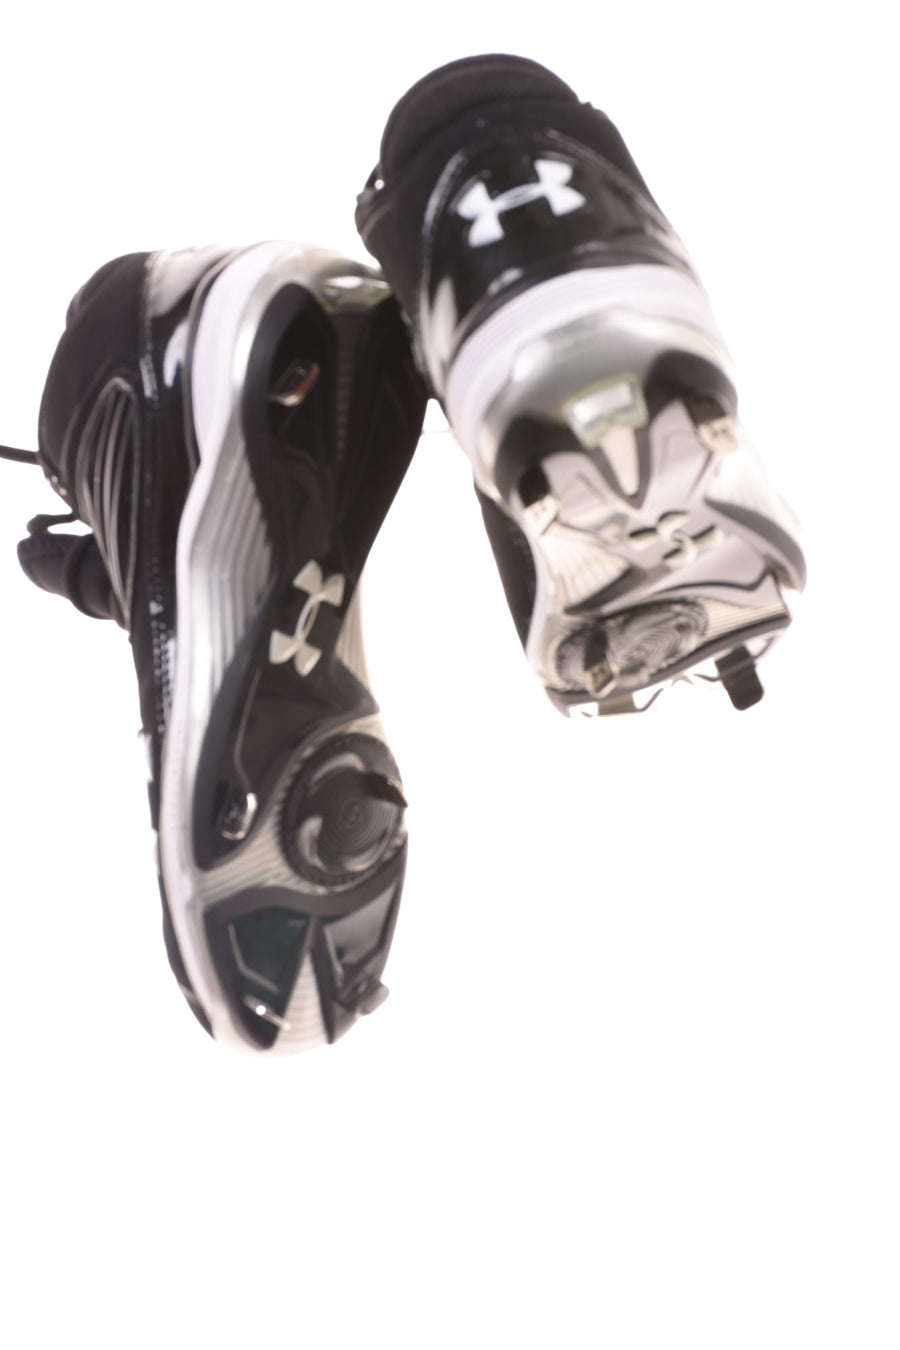 NEW Under Armour Men's Baseball Cleats 8 Black